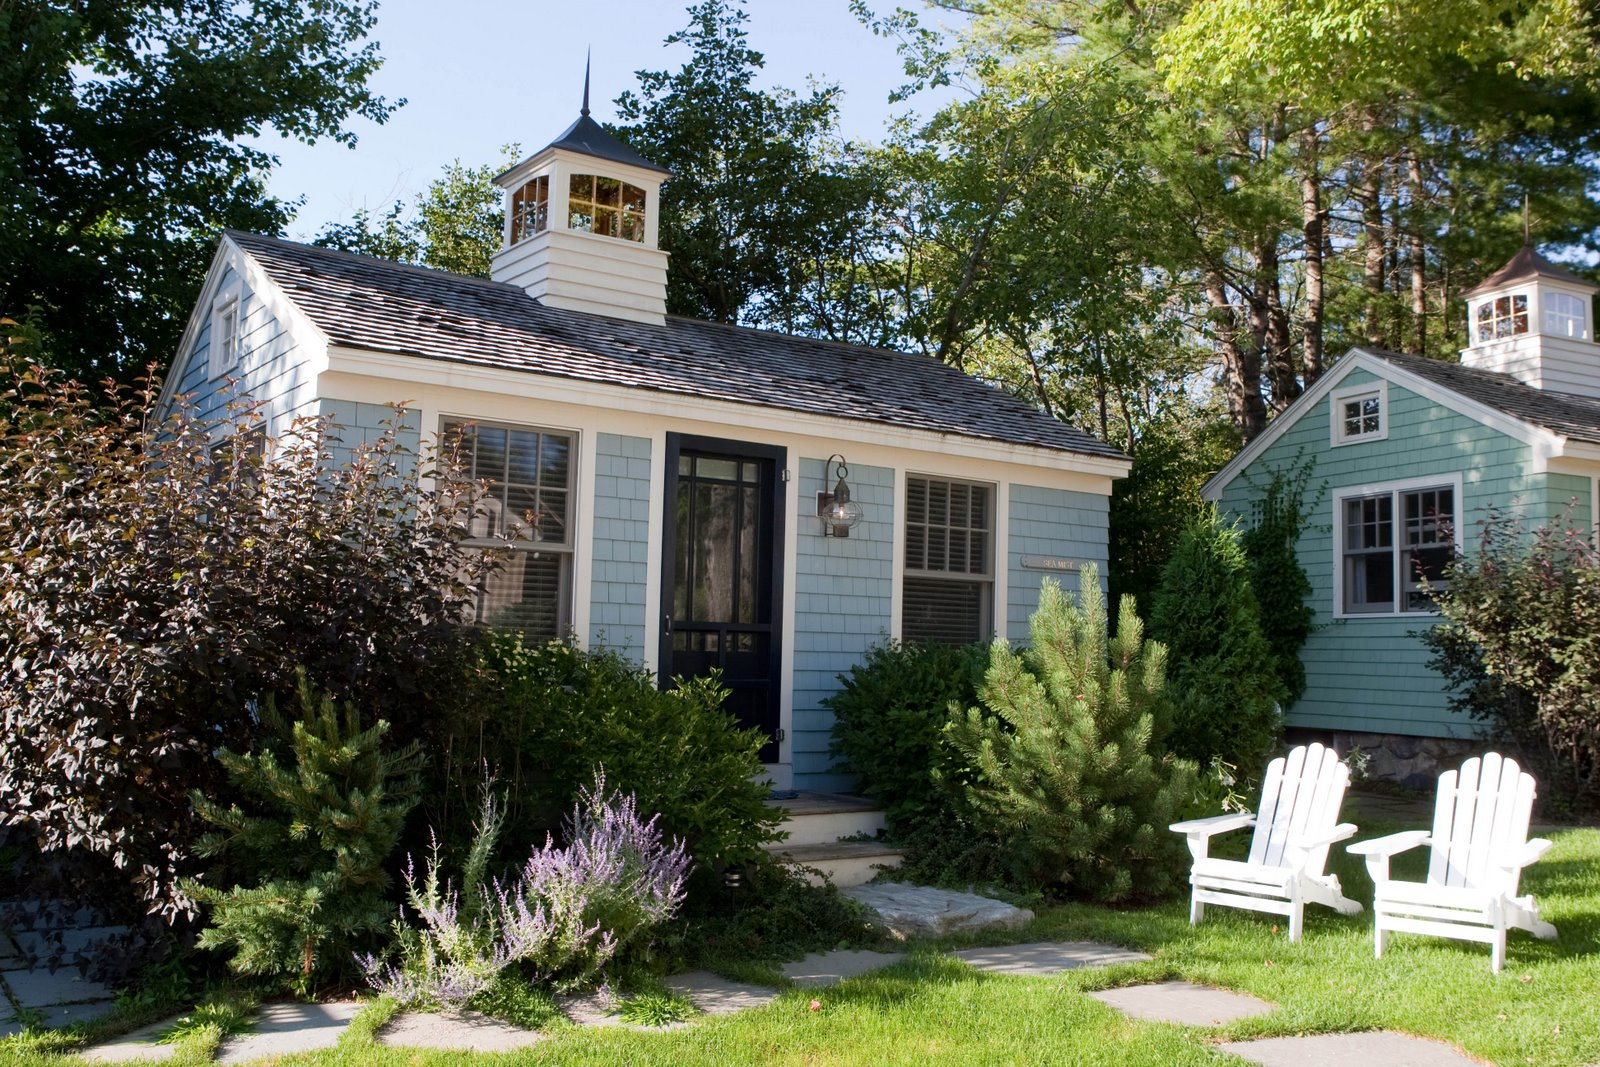 Cabot cove cottages kennebunkport maine content in a for What is a cottage